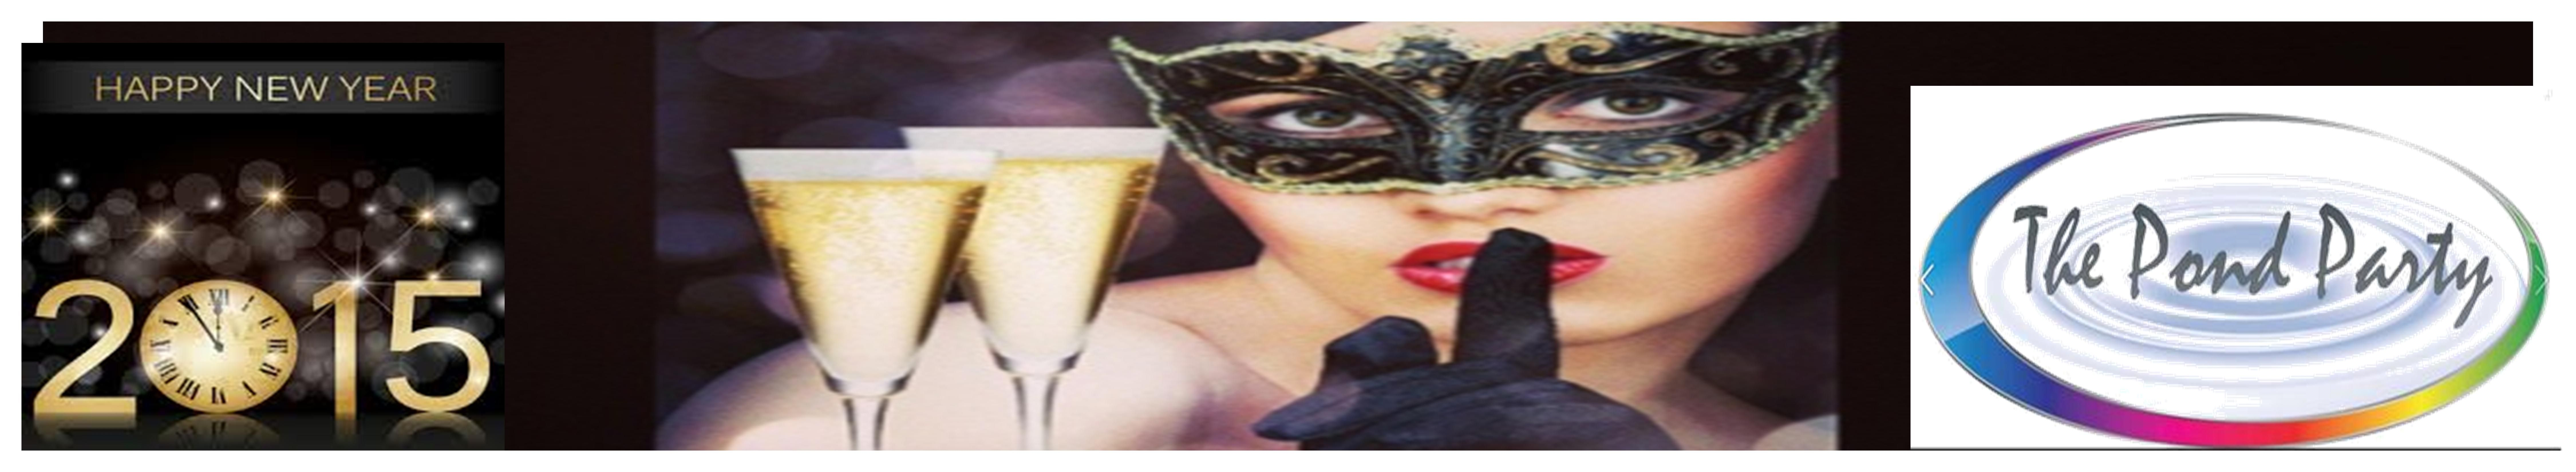 Join The Pond Party AZ for an affordable, New Years Eve Masquerade ...